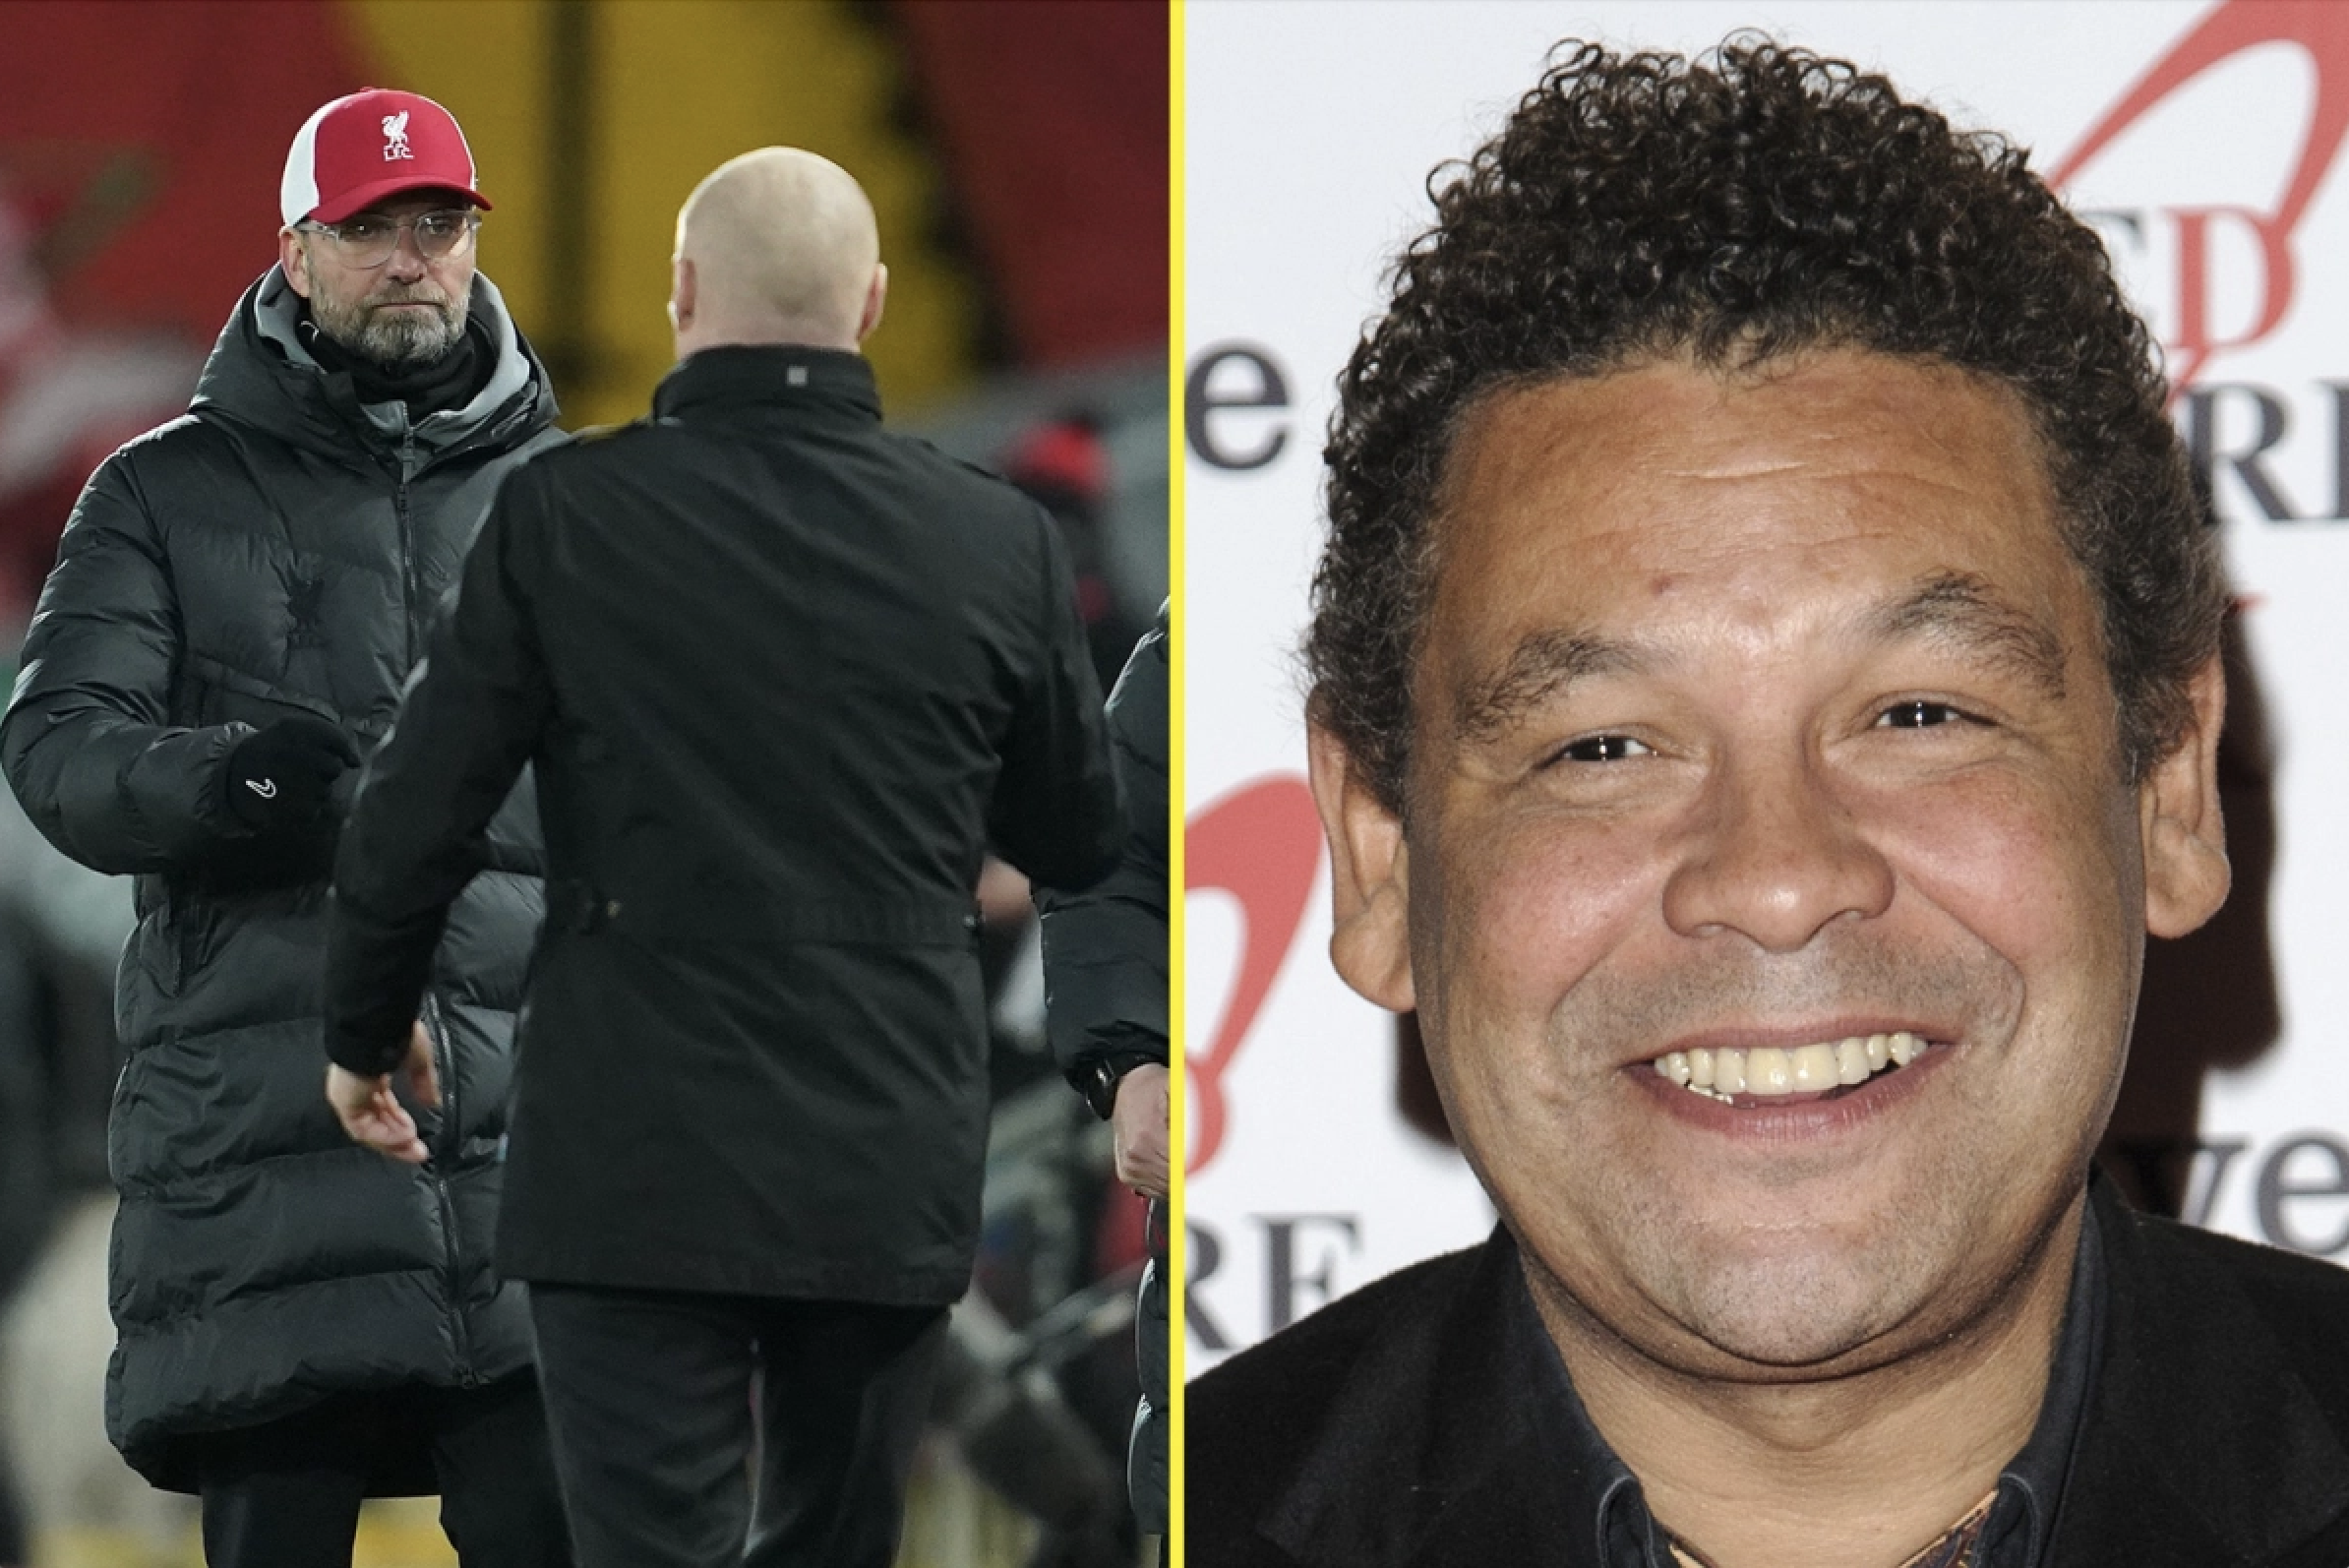 Red Dwarf star Craig Charles is angry at some Liverpool fans treatment of manager Jurgen Klopp